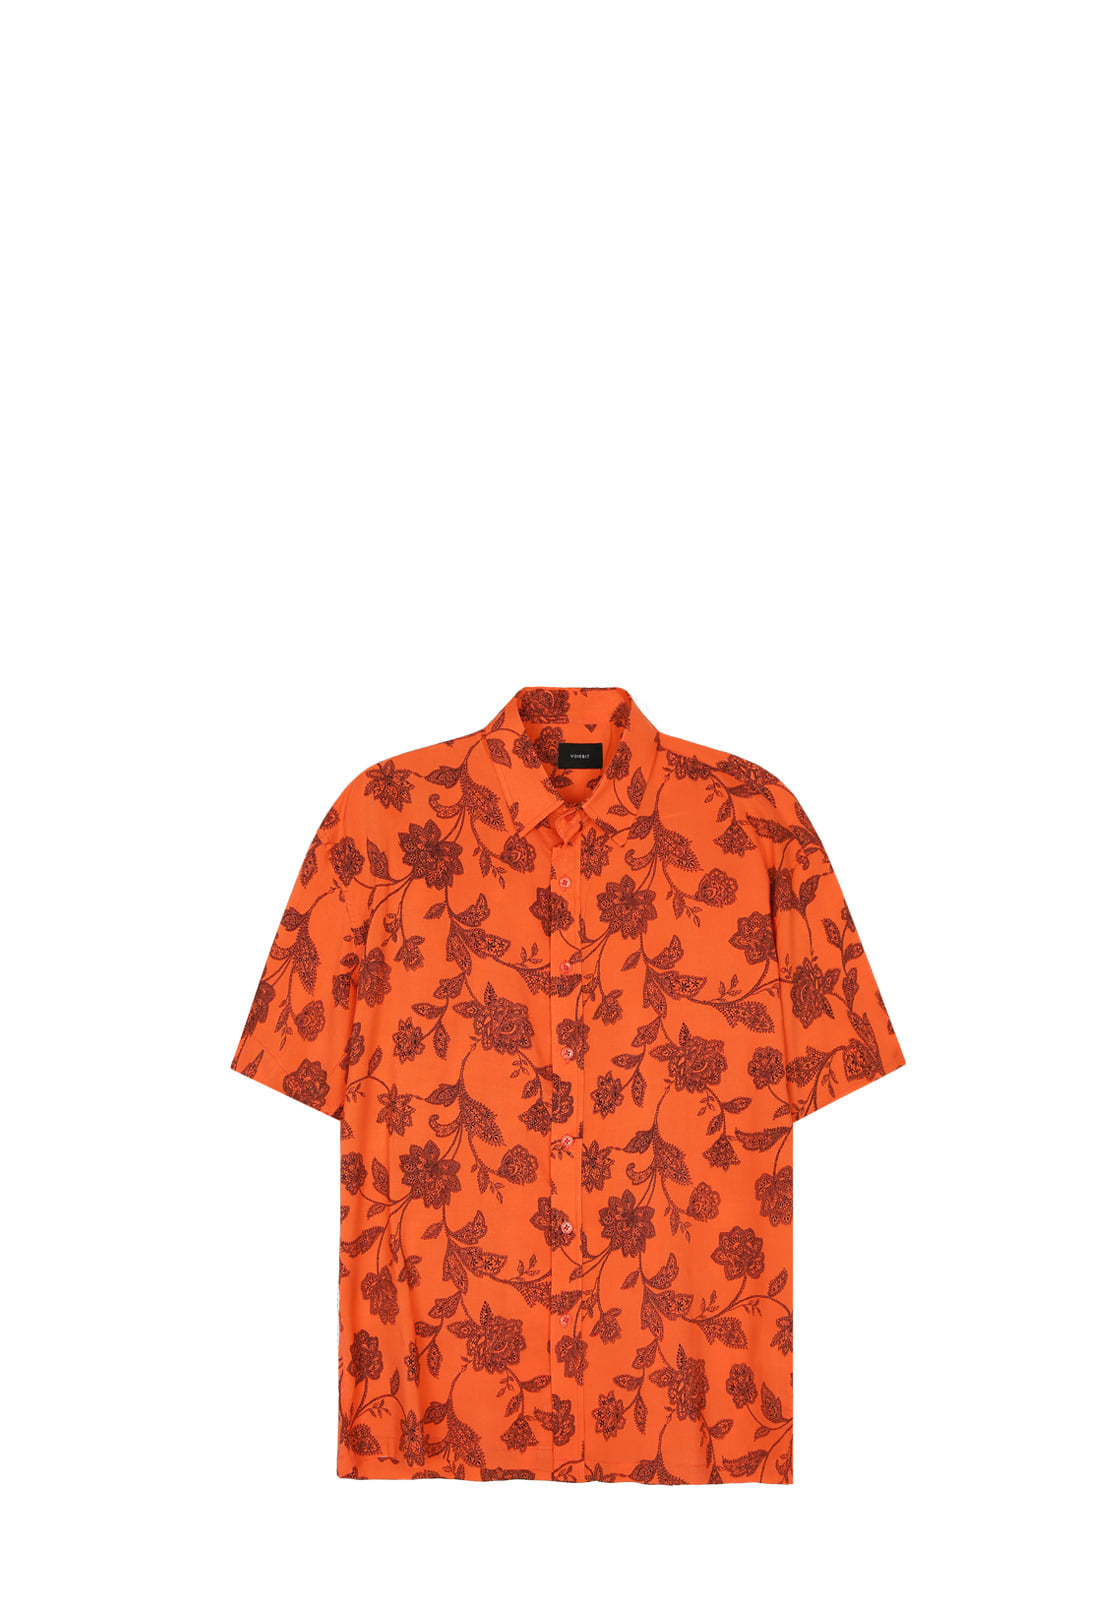 V432 DRAWING FLOWER HALF-SHIRT  ORANGE